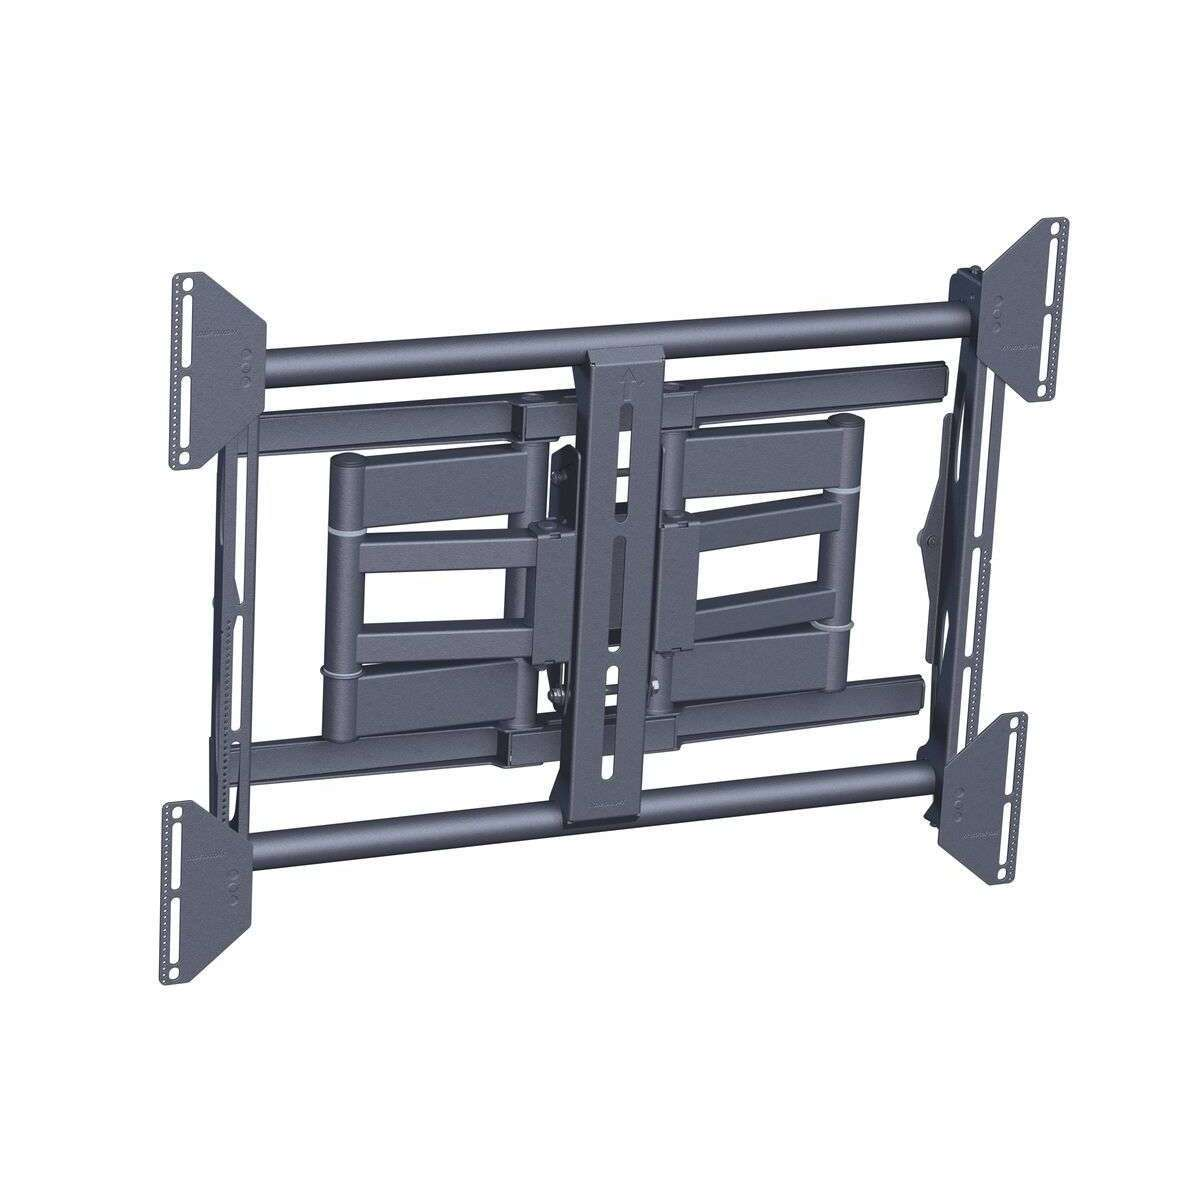 Vogels PFW 6851 Tilting Display Wall Mount